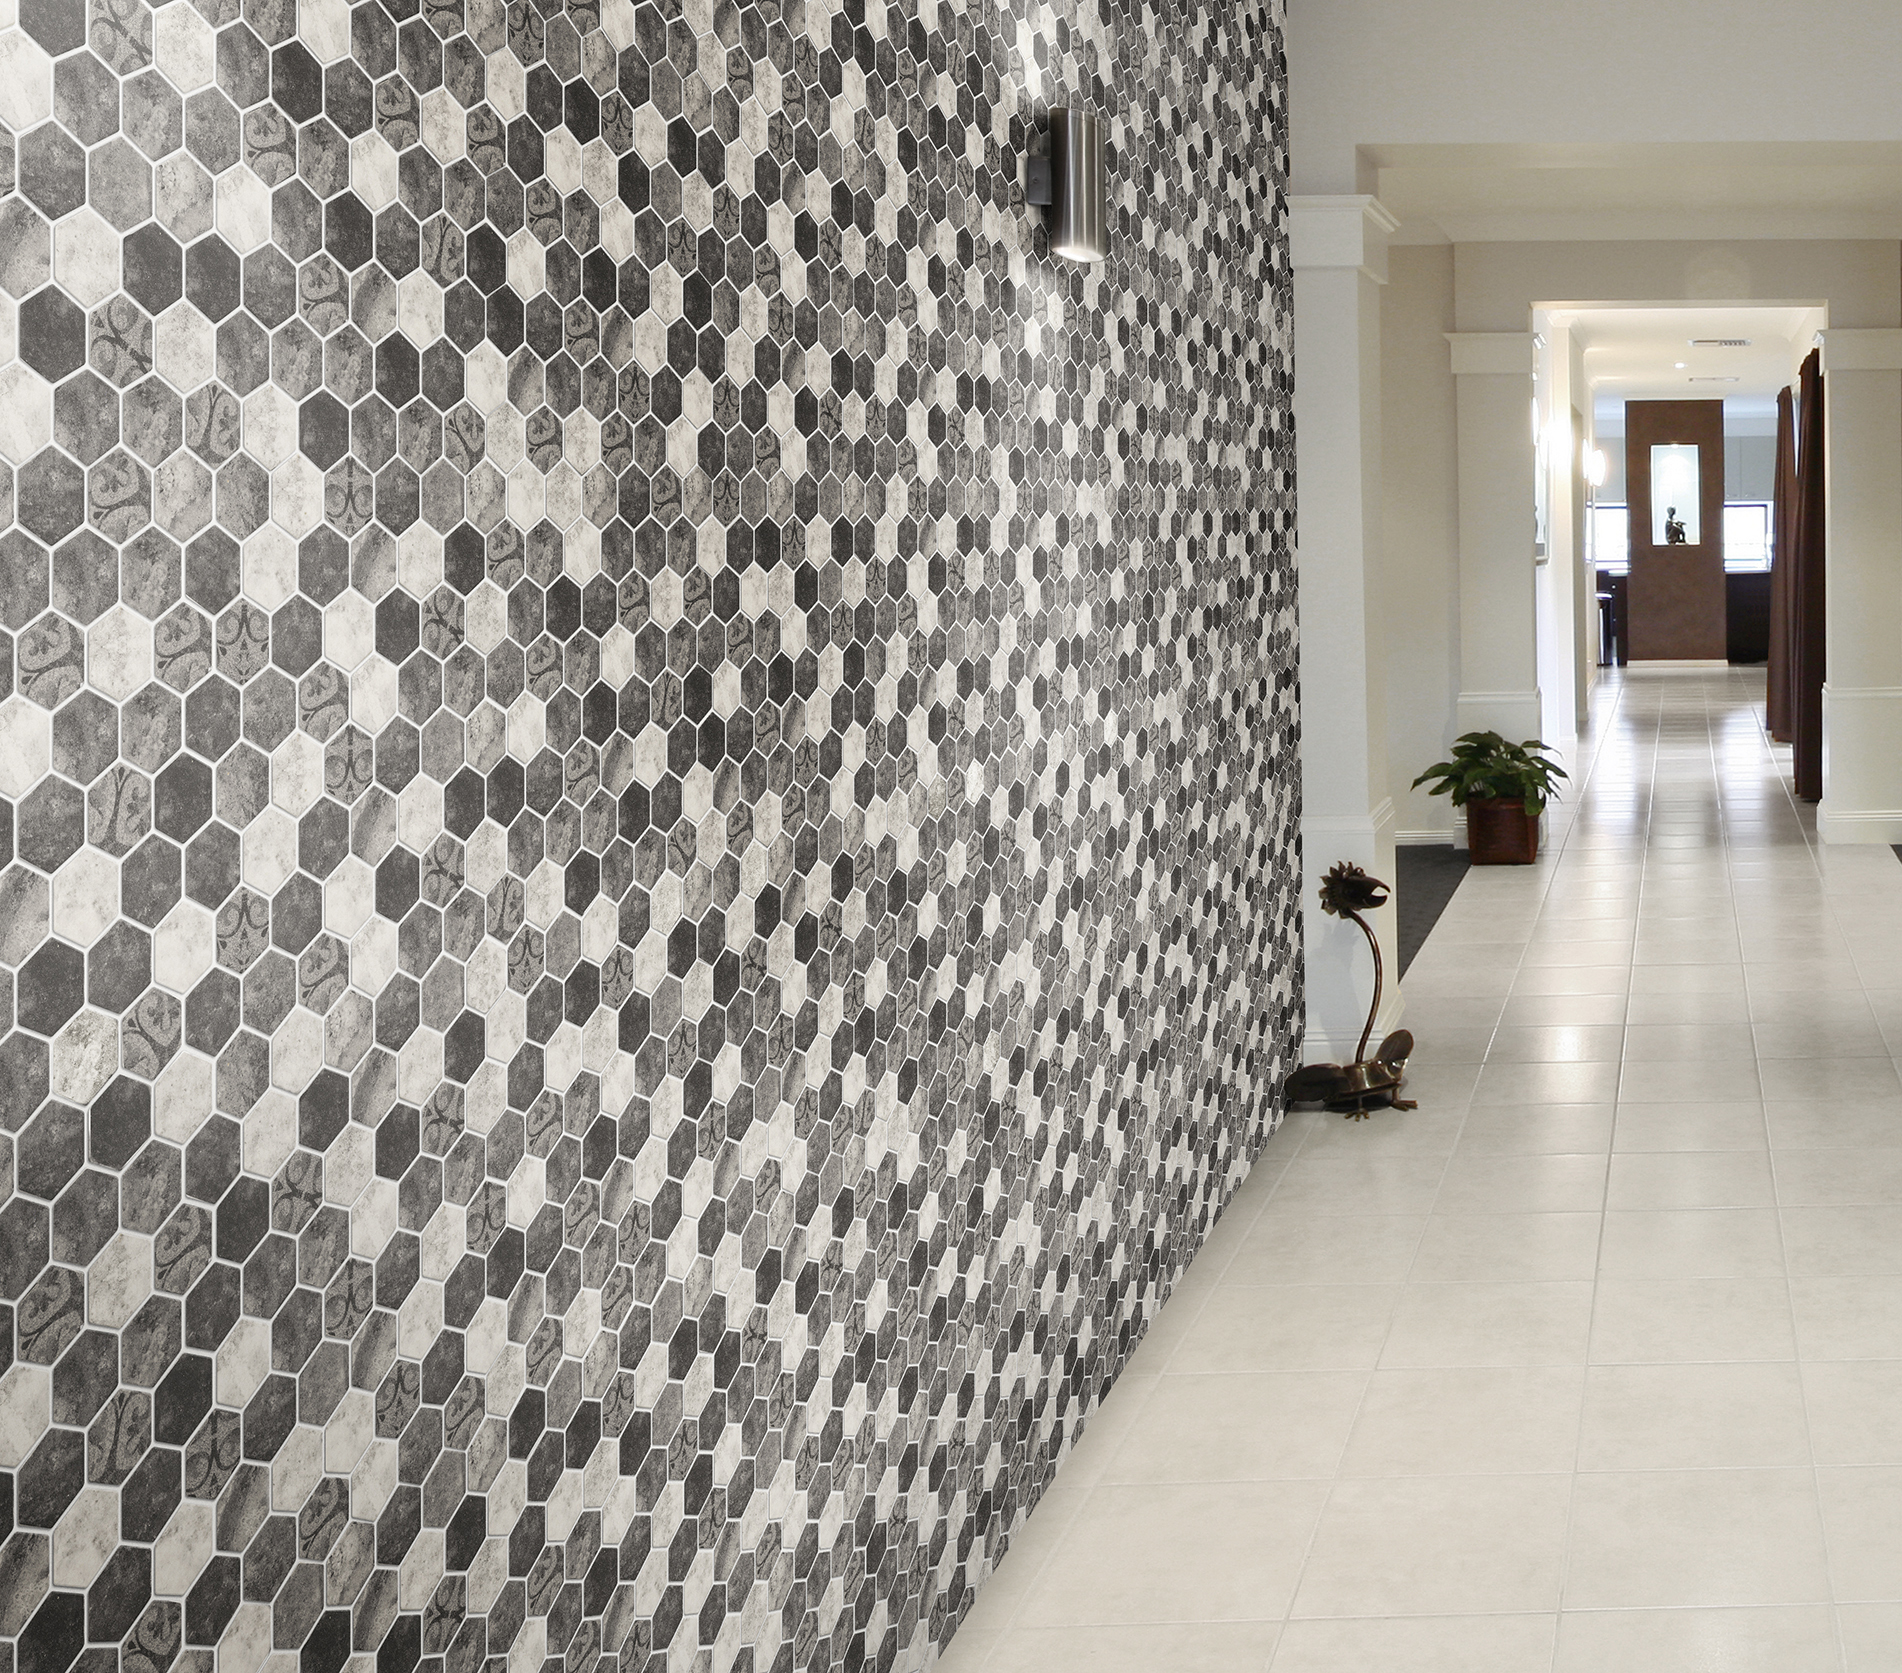 Tile Of Spain Reveals Global Design Trends And Innovation